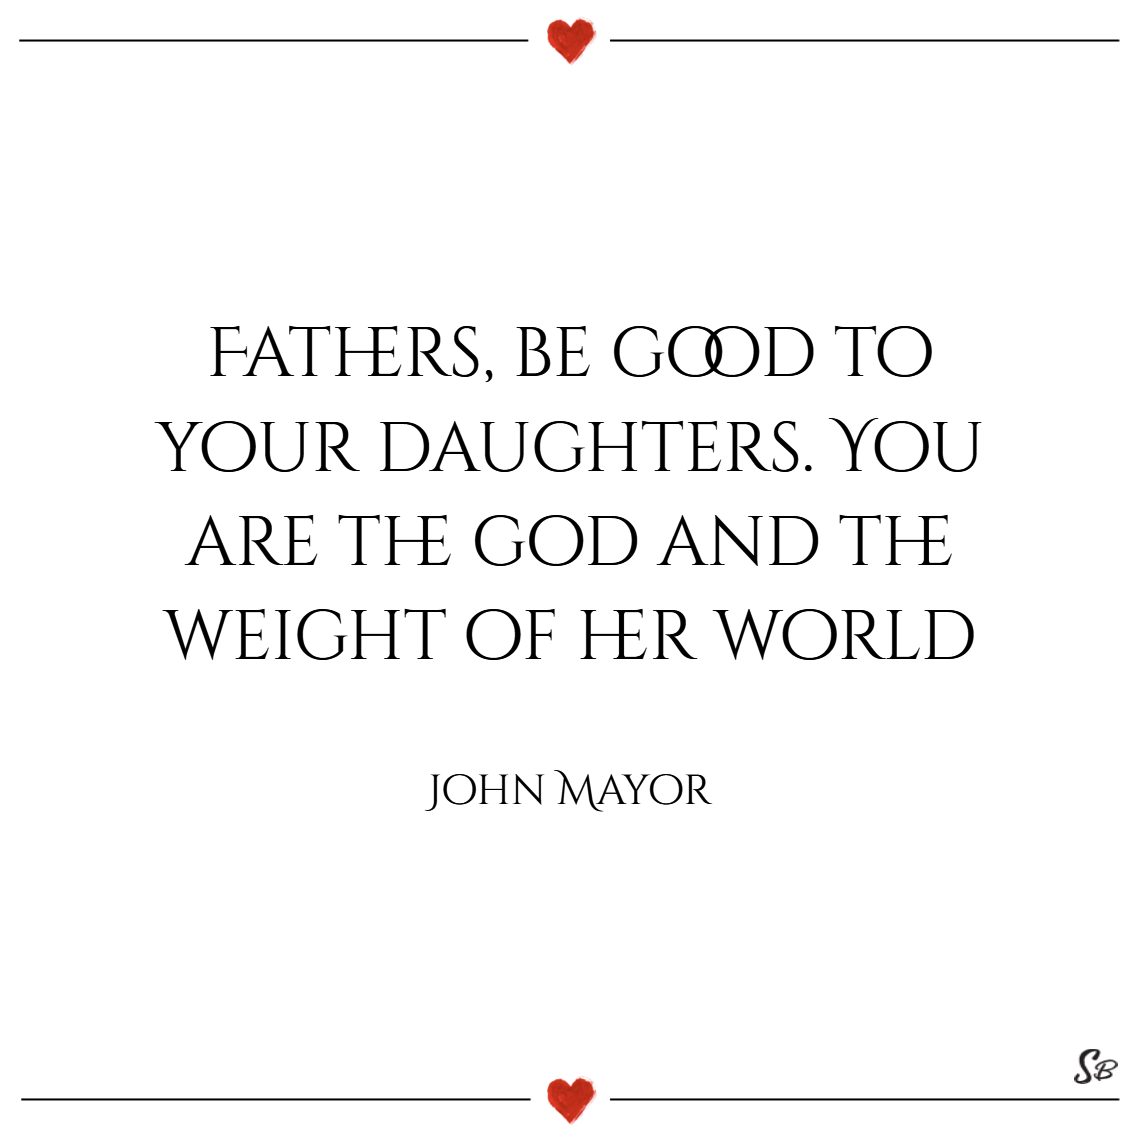 Fathers, be good to your daughters. you are the god and the weight of her world. – john mayor